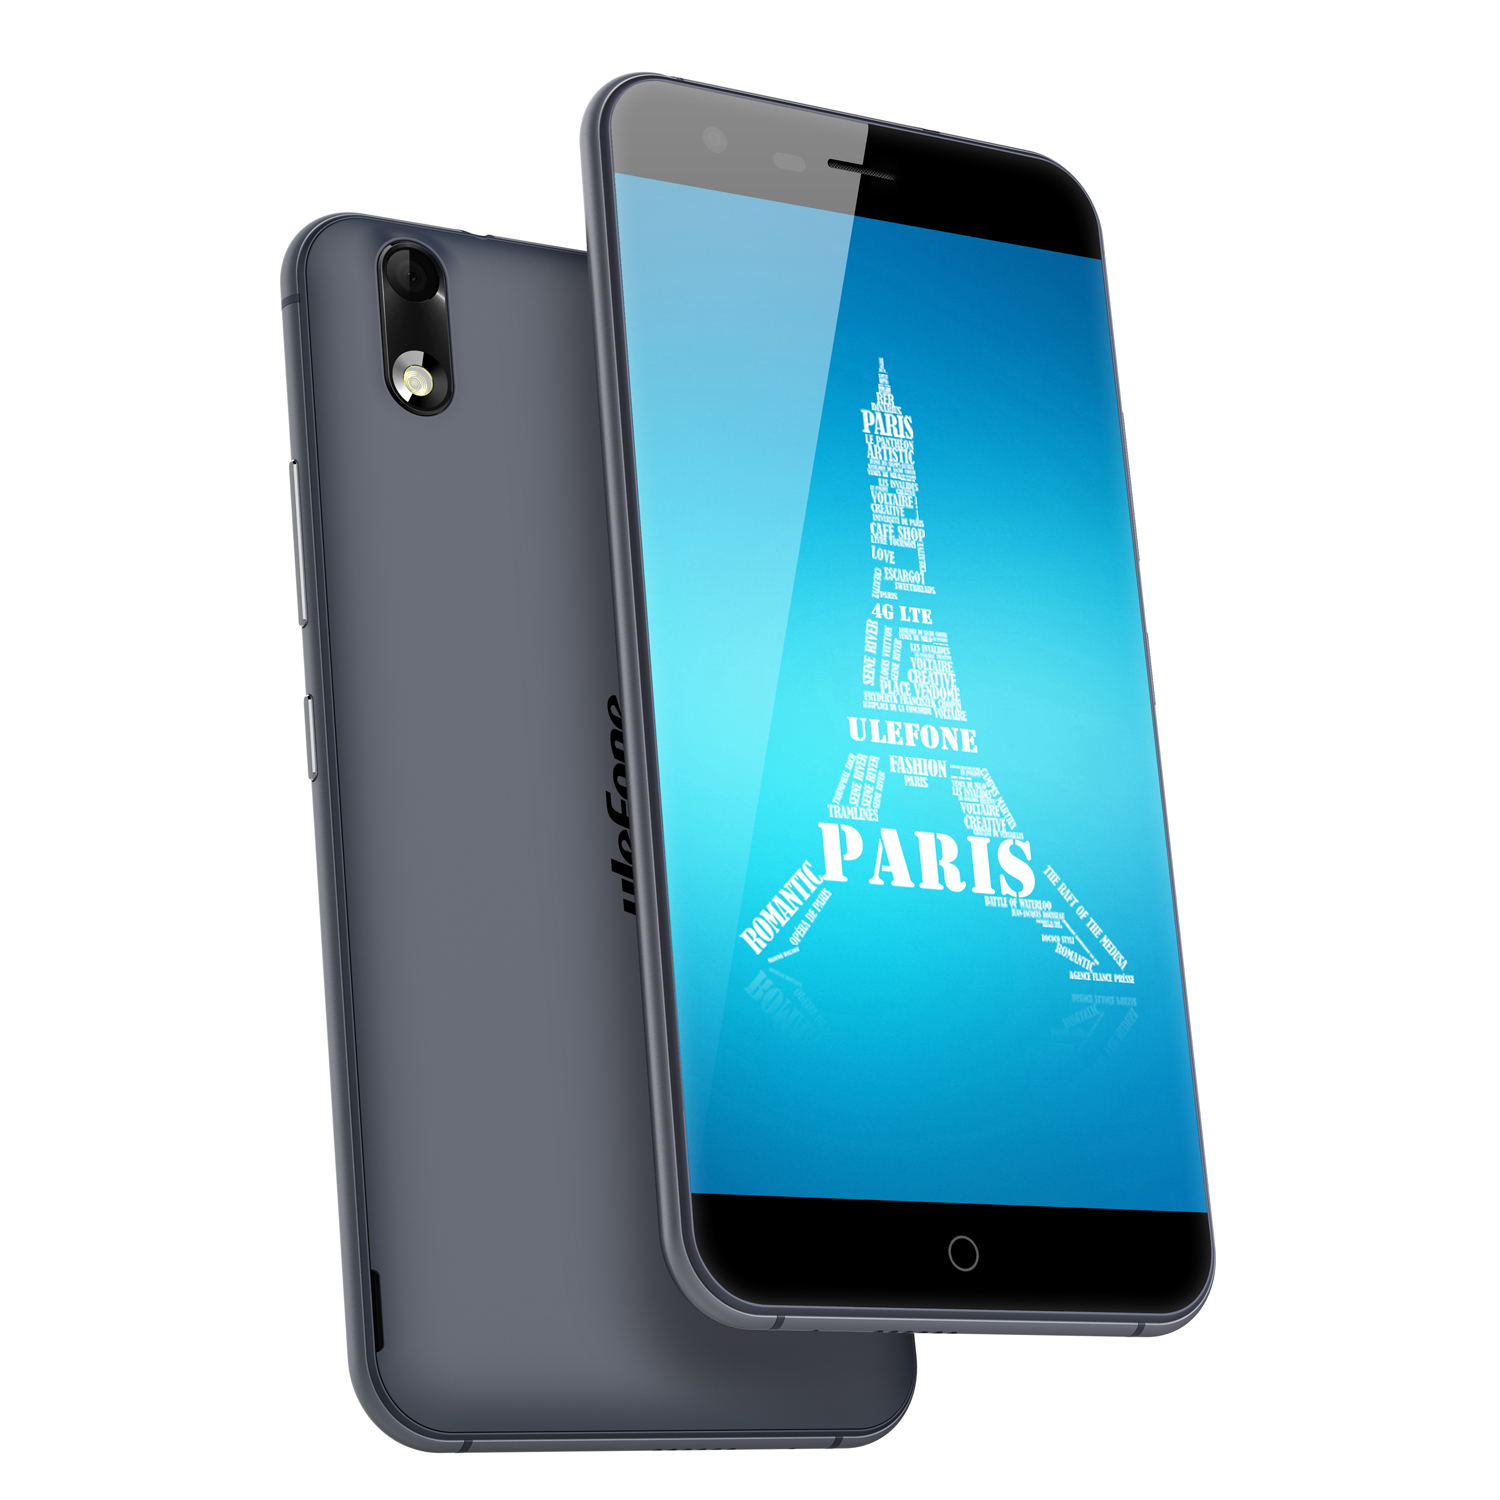 ulefone Paris 4G Smartphone MT6753 Octa Core 2GB 16GB Black + Free Accessory Set